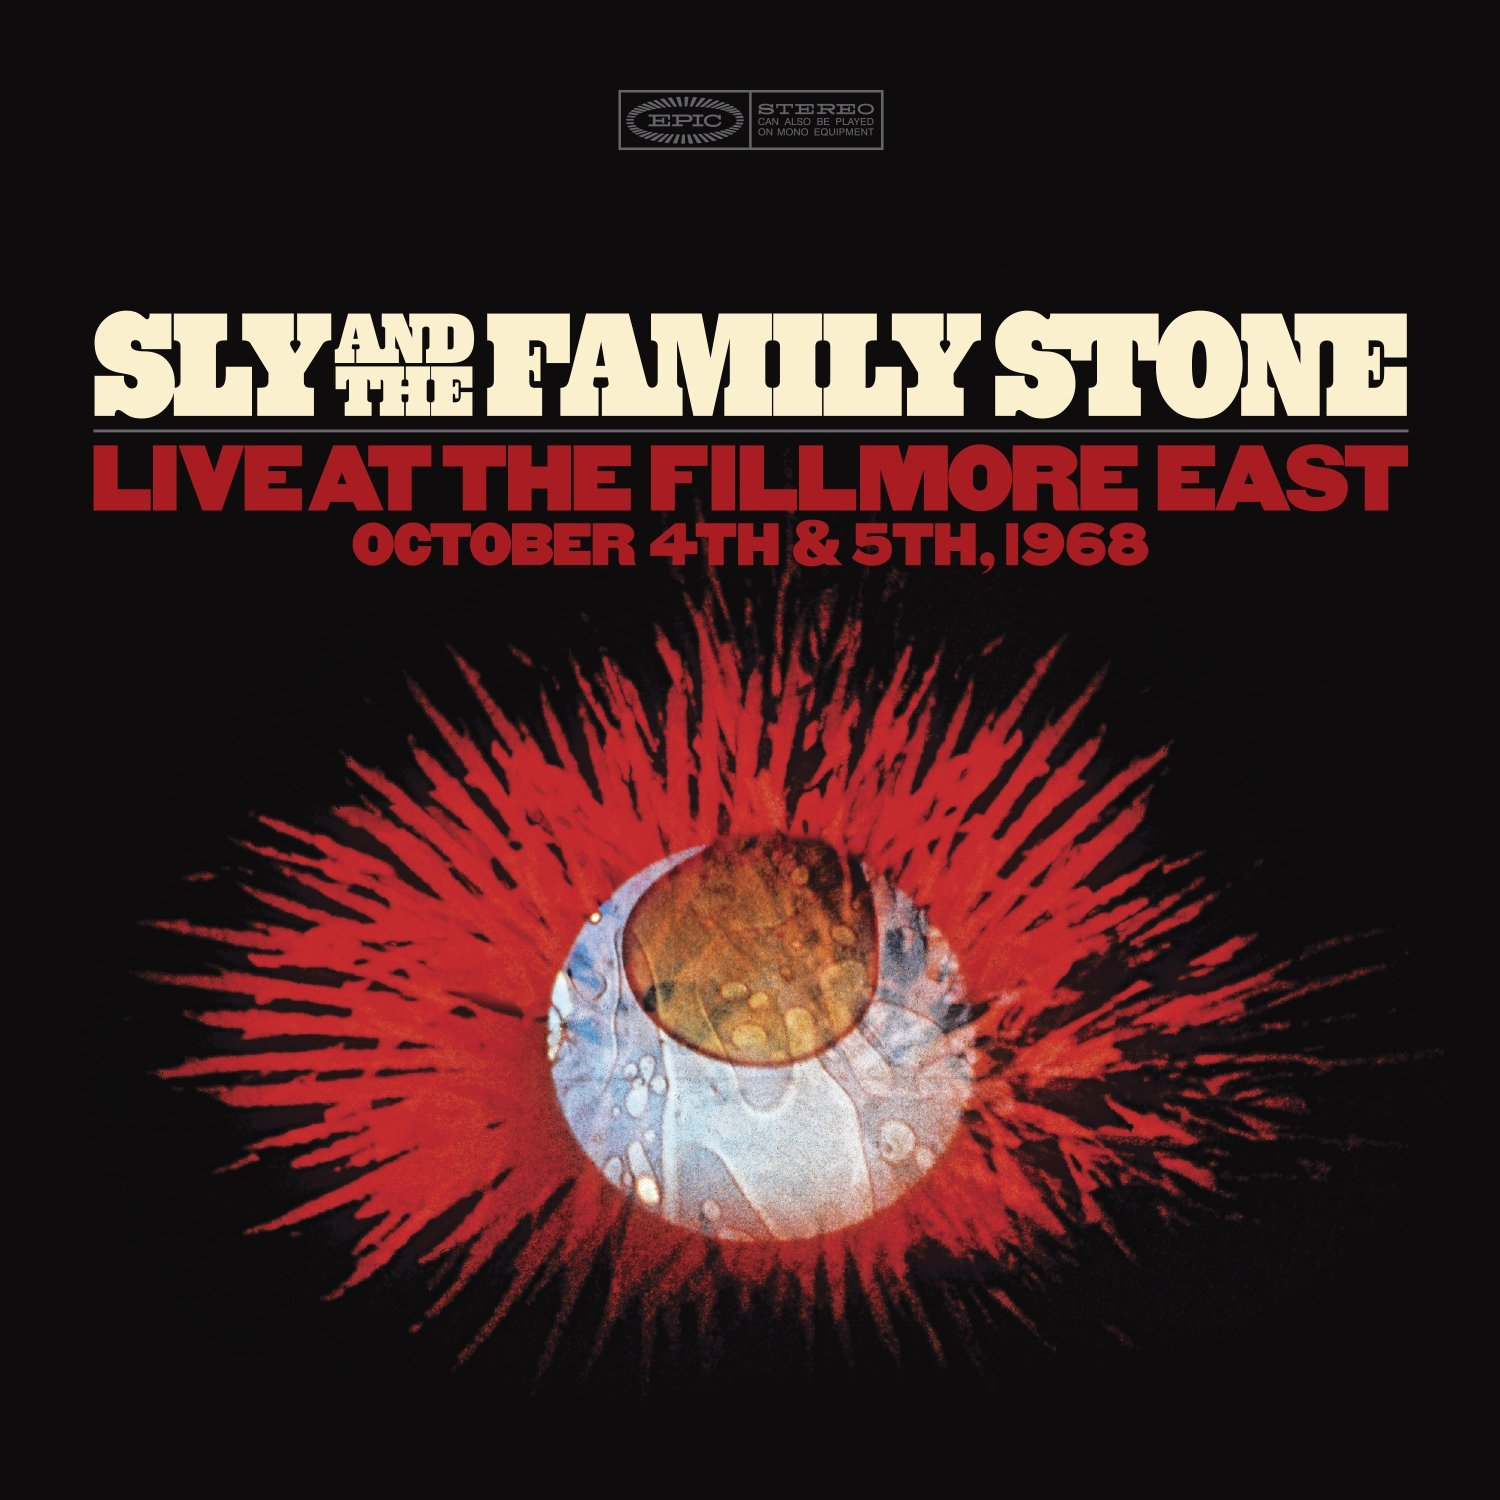 Live at the Fillmore East October 4th & 5th 1968 by CD